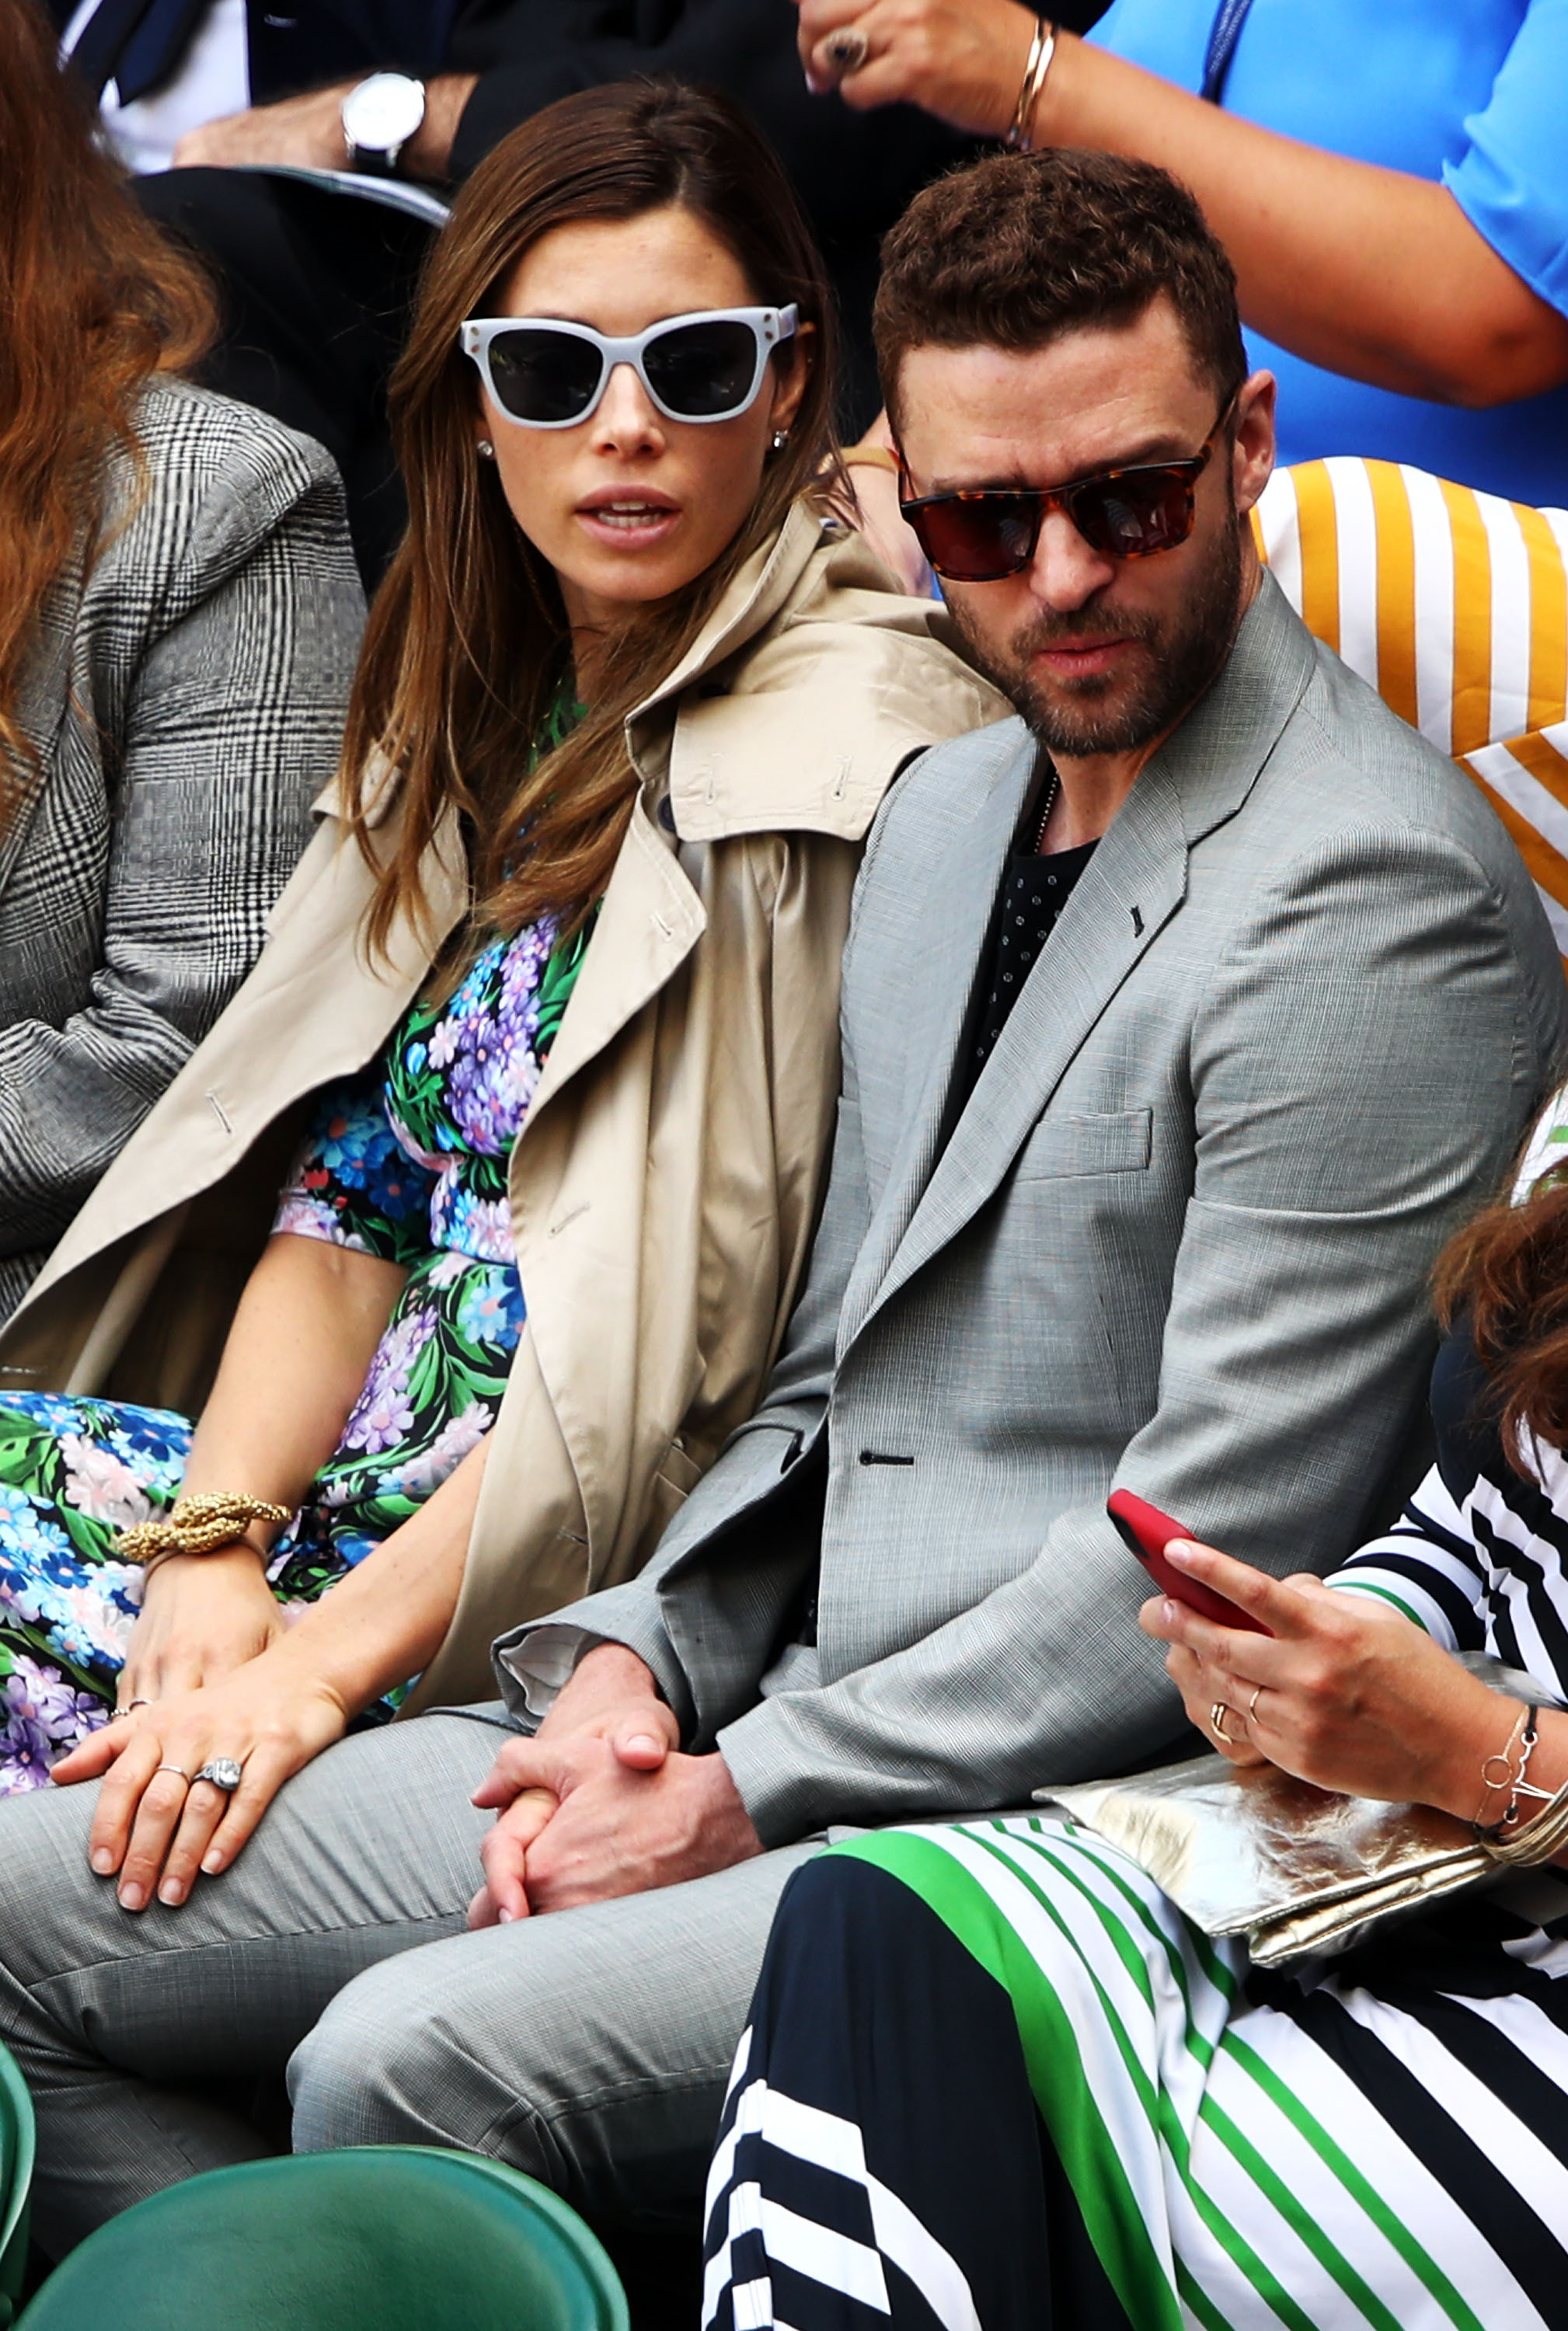 Justin Timberlake and his wife Jessica Biel attend day eight of the Wimbledon Lawn Tennis Championships at All England Lawn Tennis and Croquet Club on July 10, 2018 in London, England.